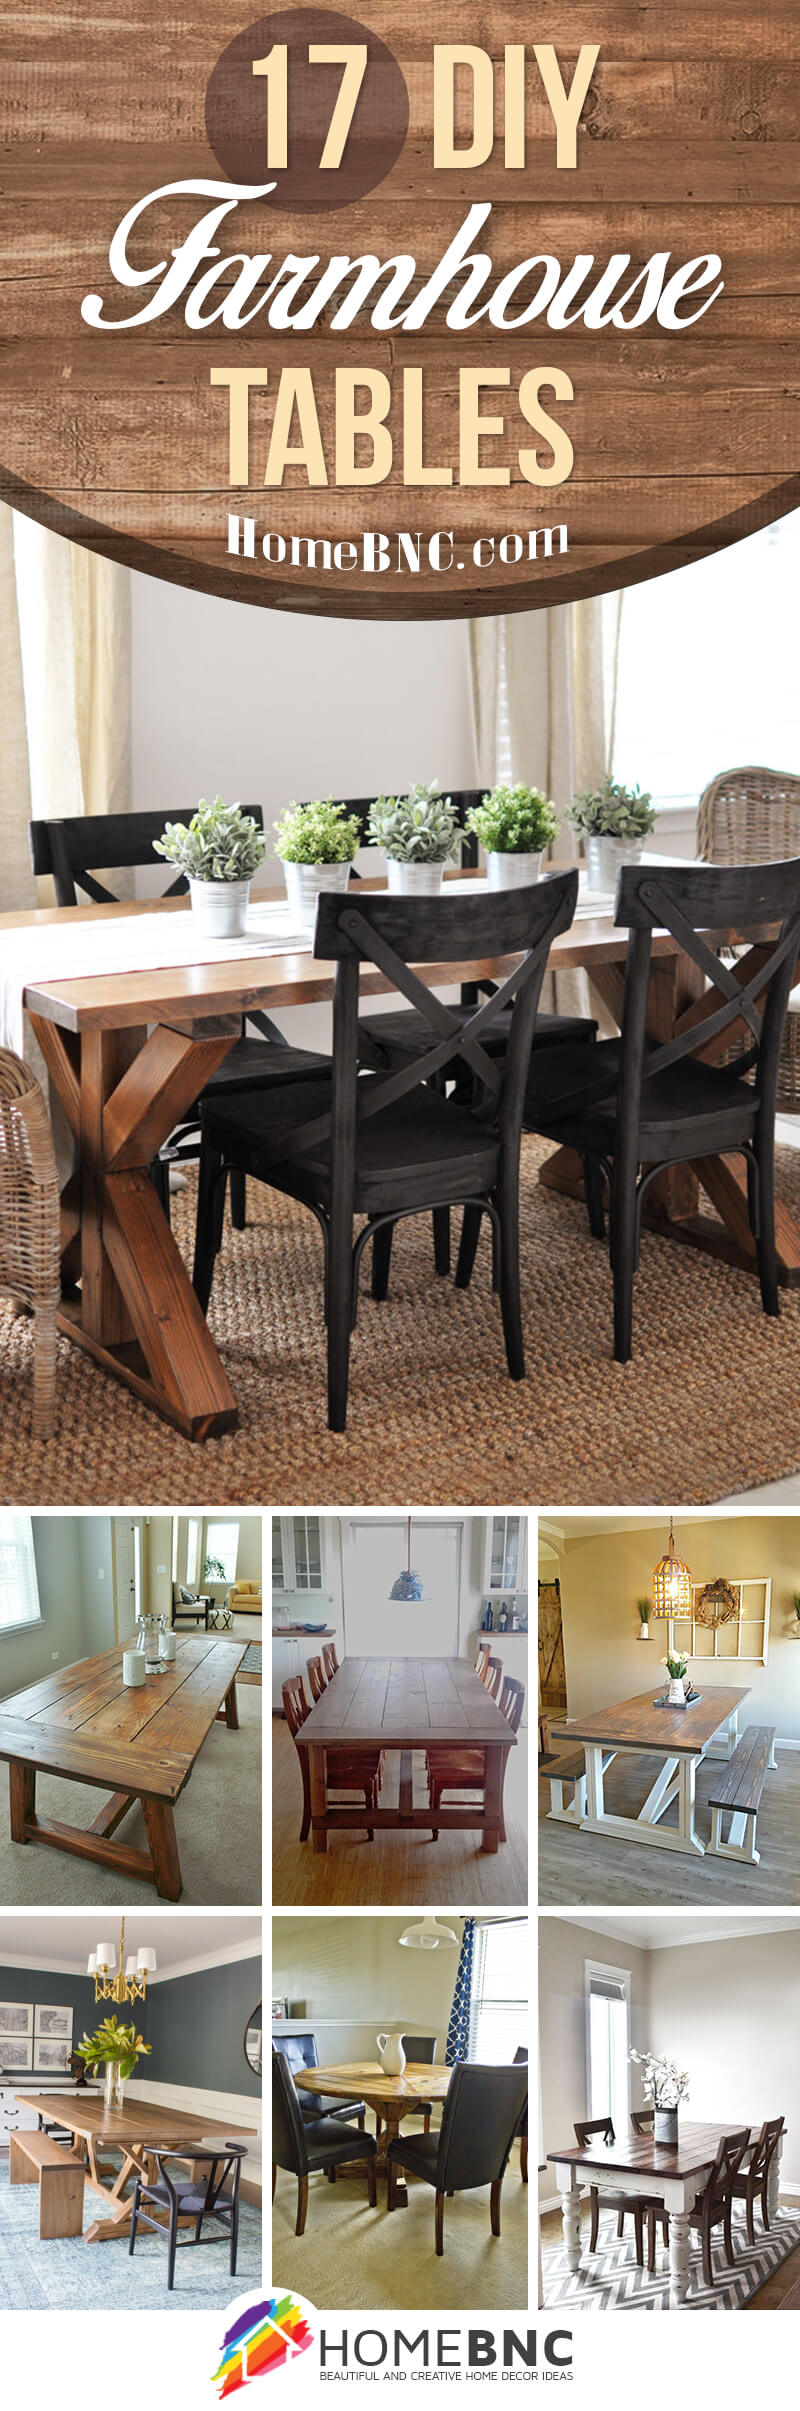 best rustic diy farmhouse table ideas and designs for share homebnc accent the perfect your home wicker outdoor furniture dorm antique teal chairs coastal bathroom accessories